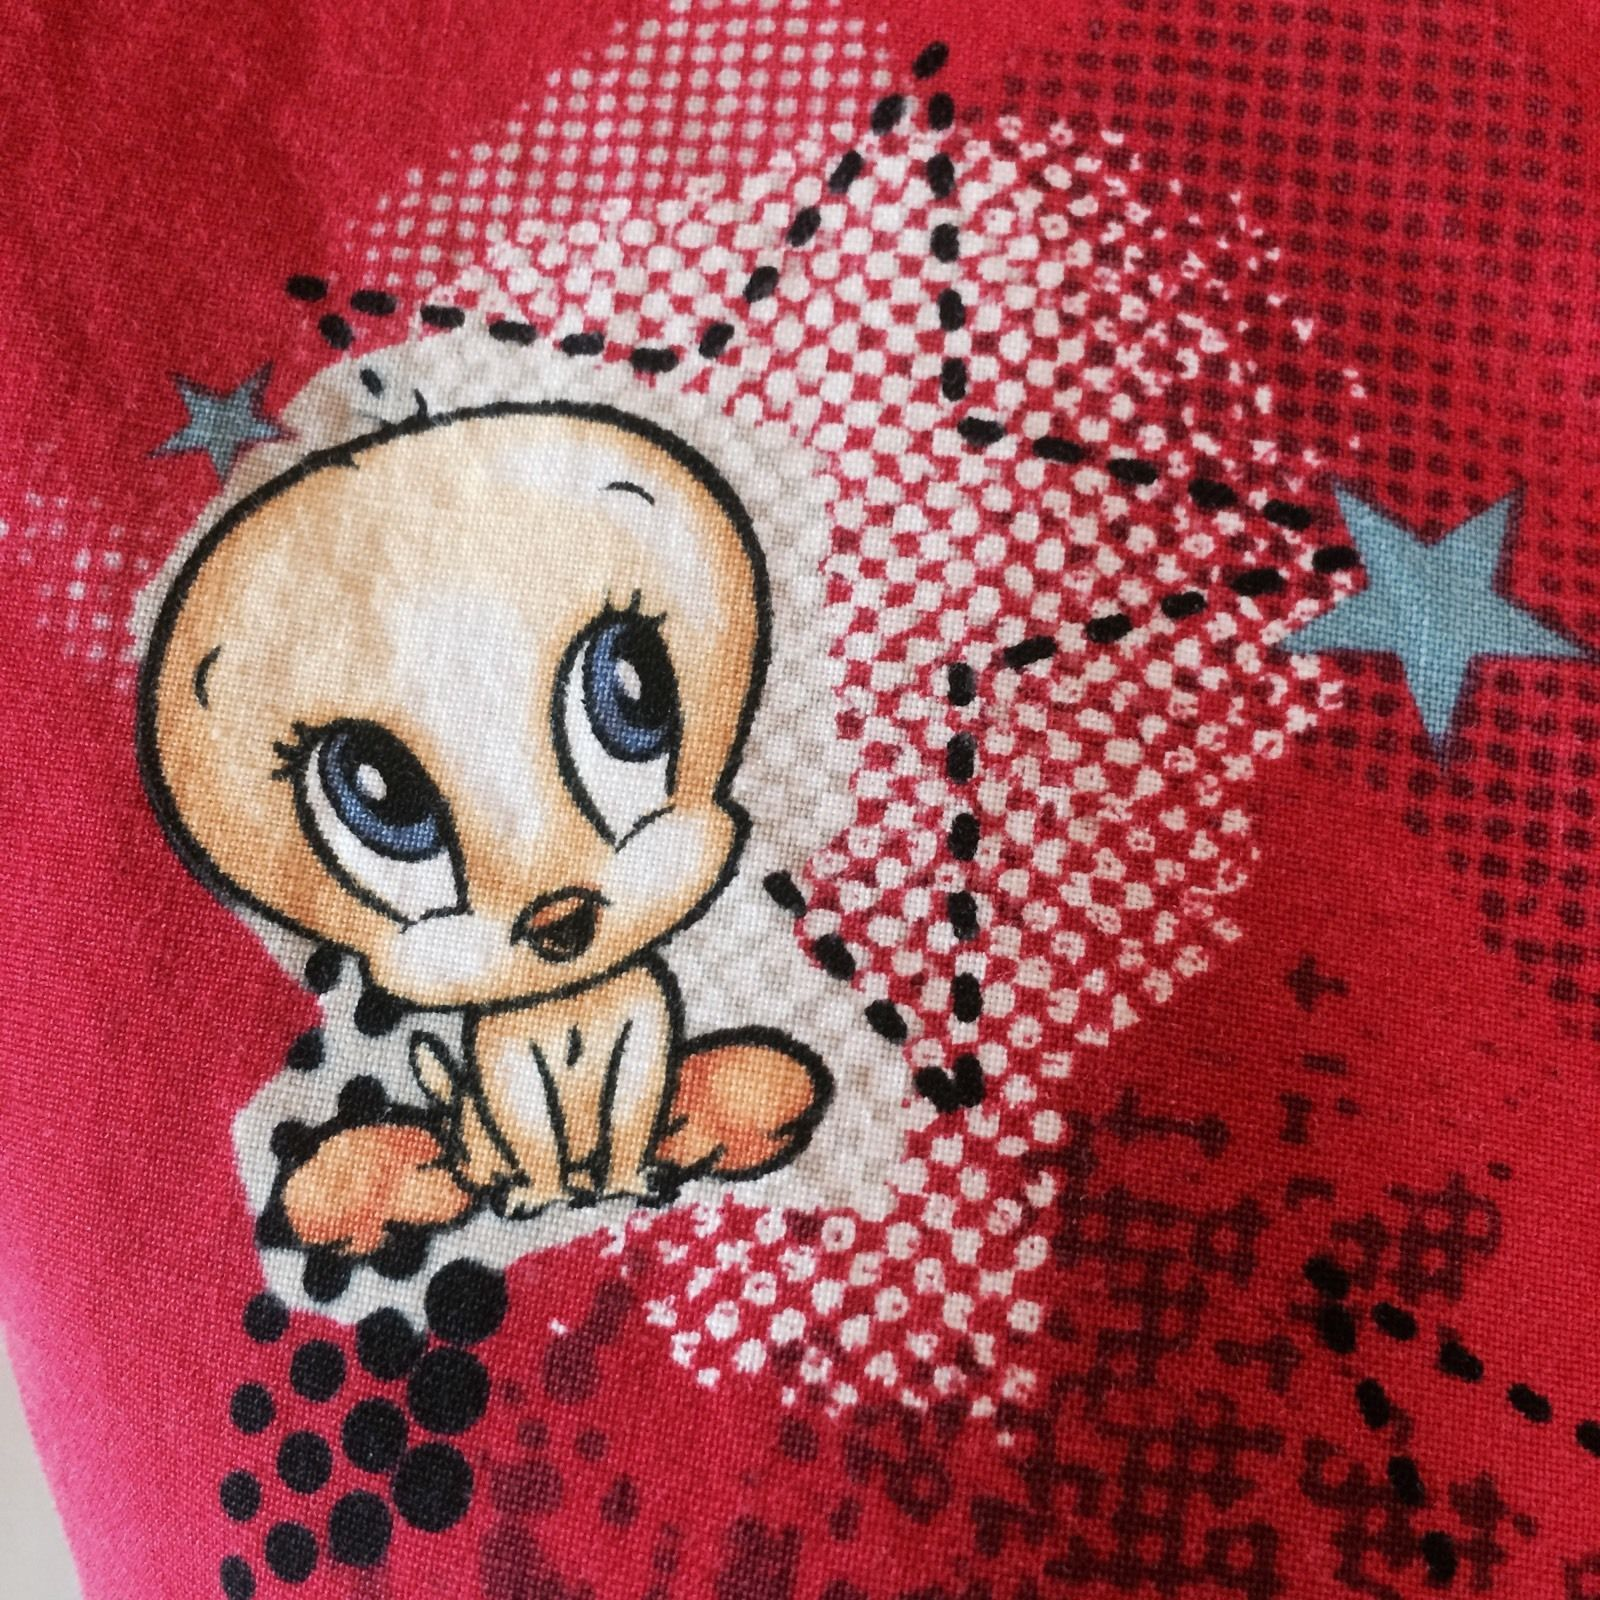 b9535771375 S l1600. S l1600. Previous. Scrub Tweety Bird Blonde Ambition Looney Tunes  Red Top V neck Cross Body Warner. Scrub Tweety Bird ...